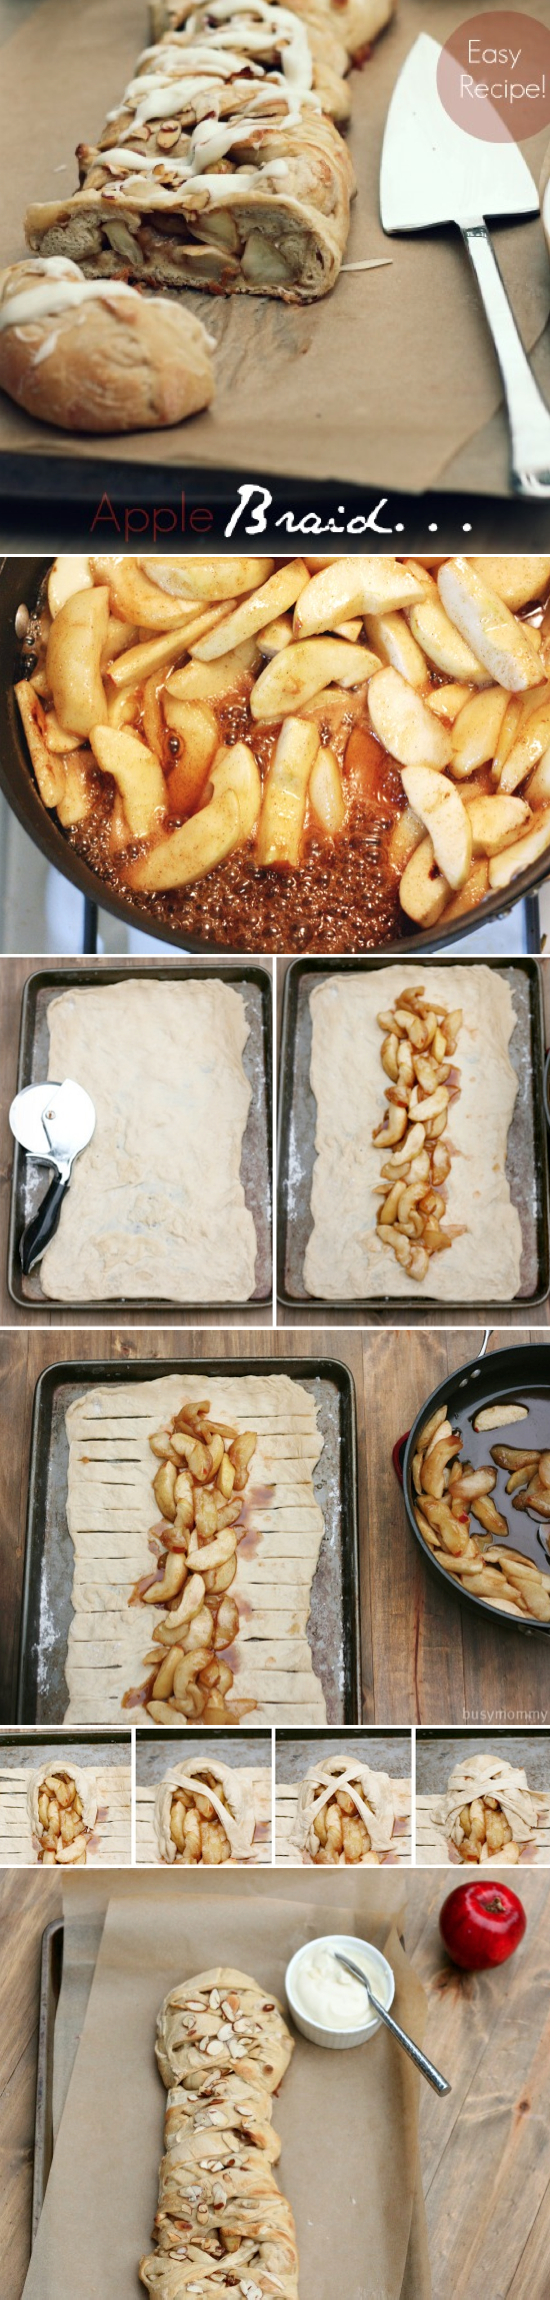 Easy-Apple-Braid-Dessert